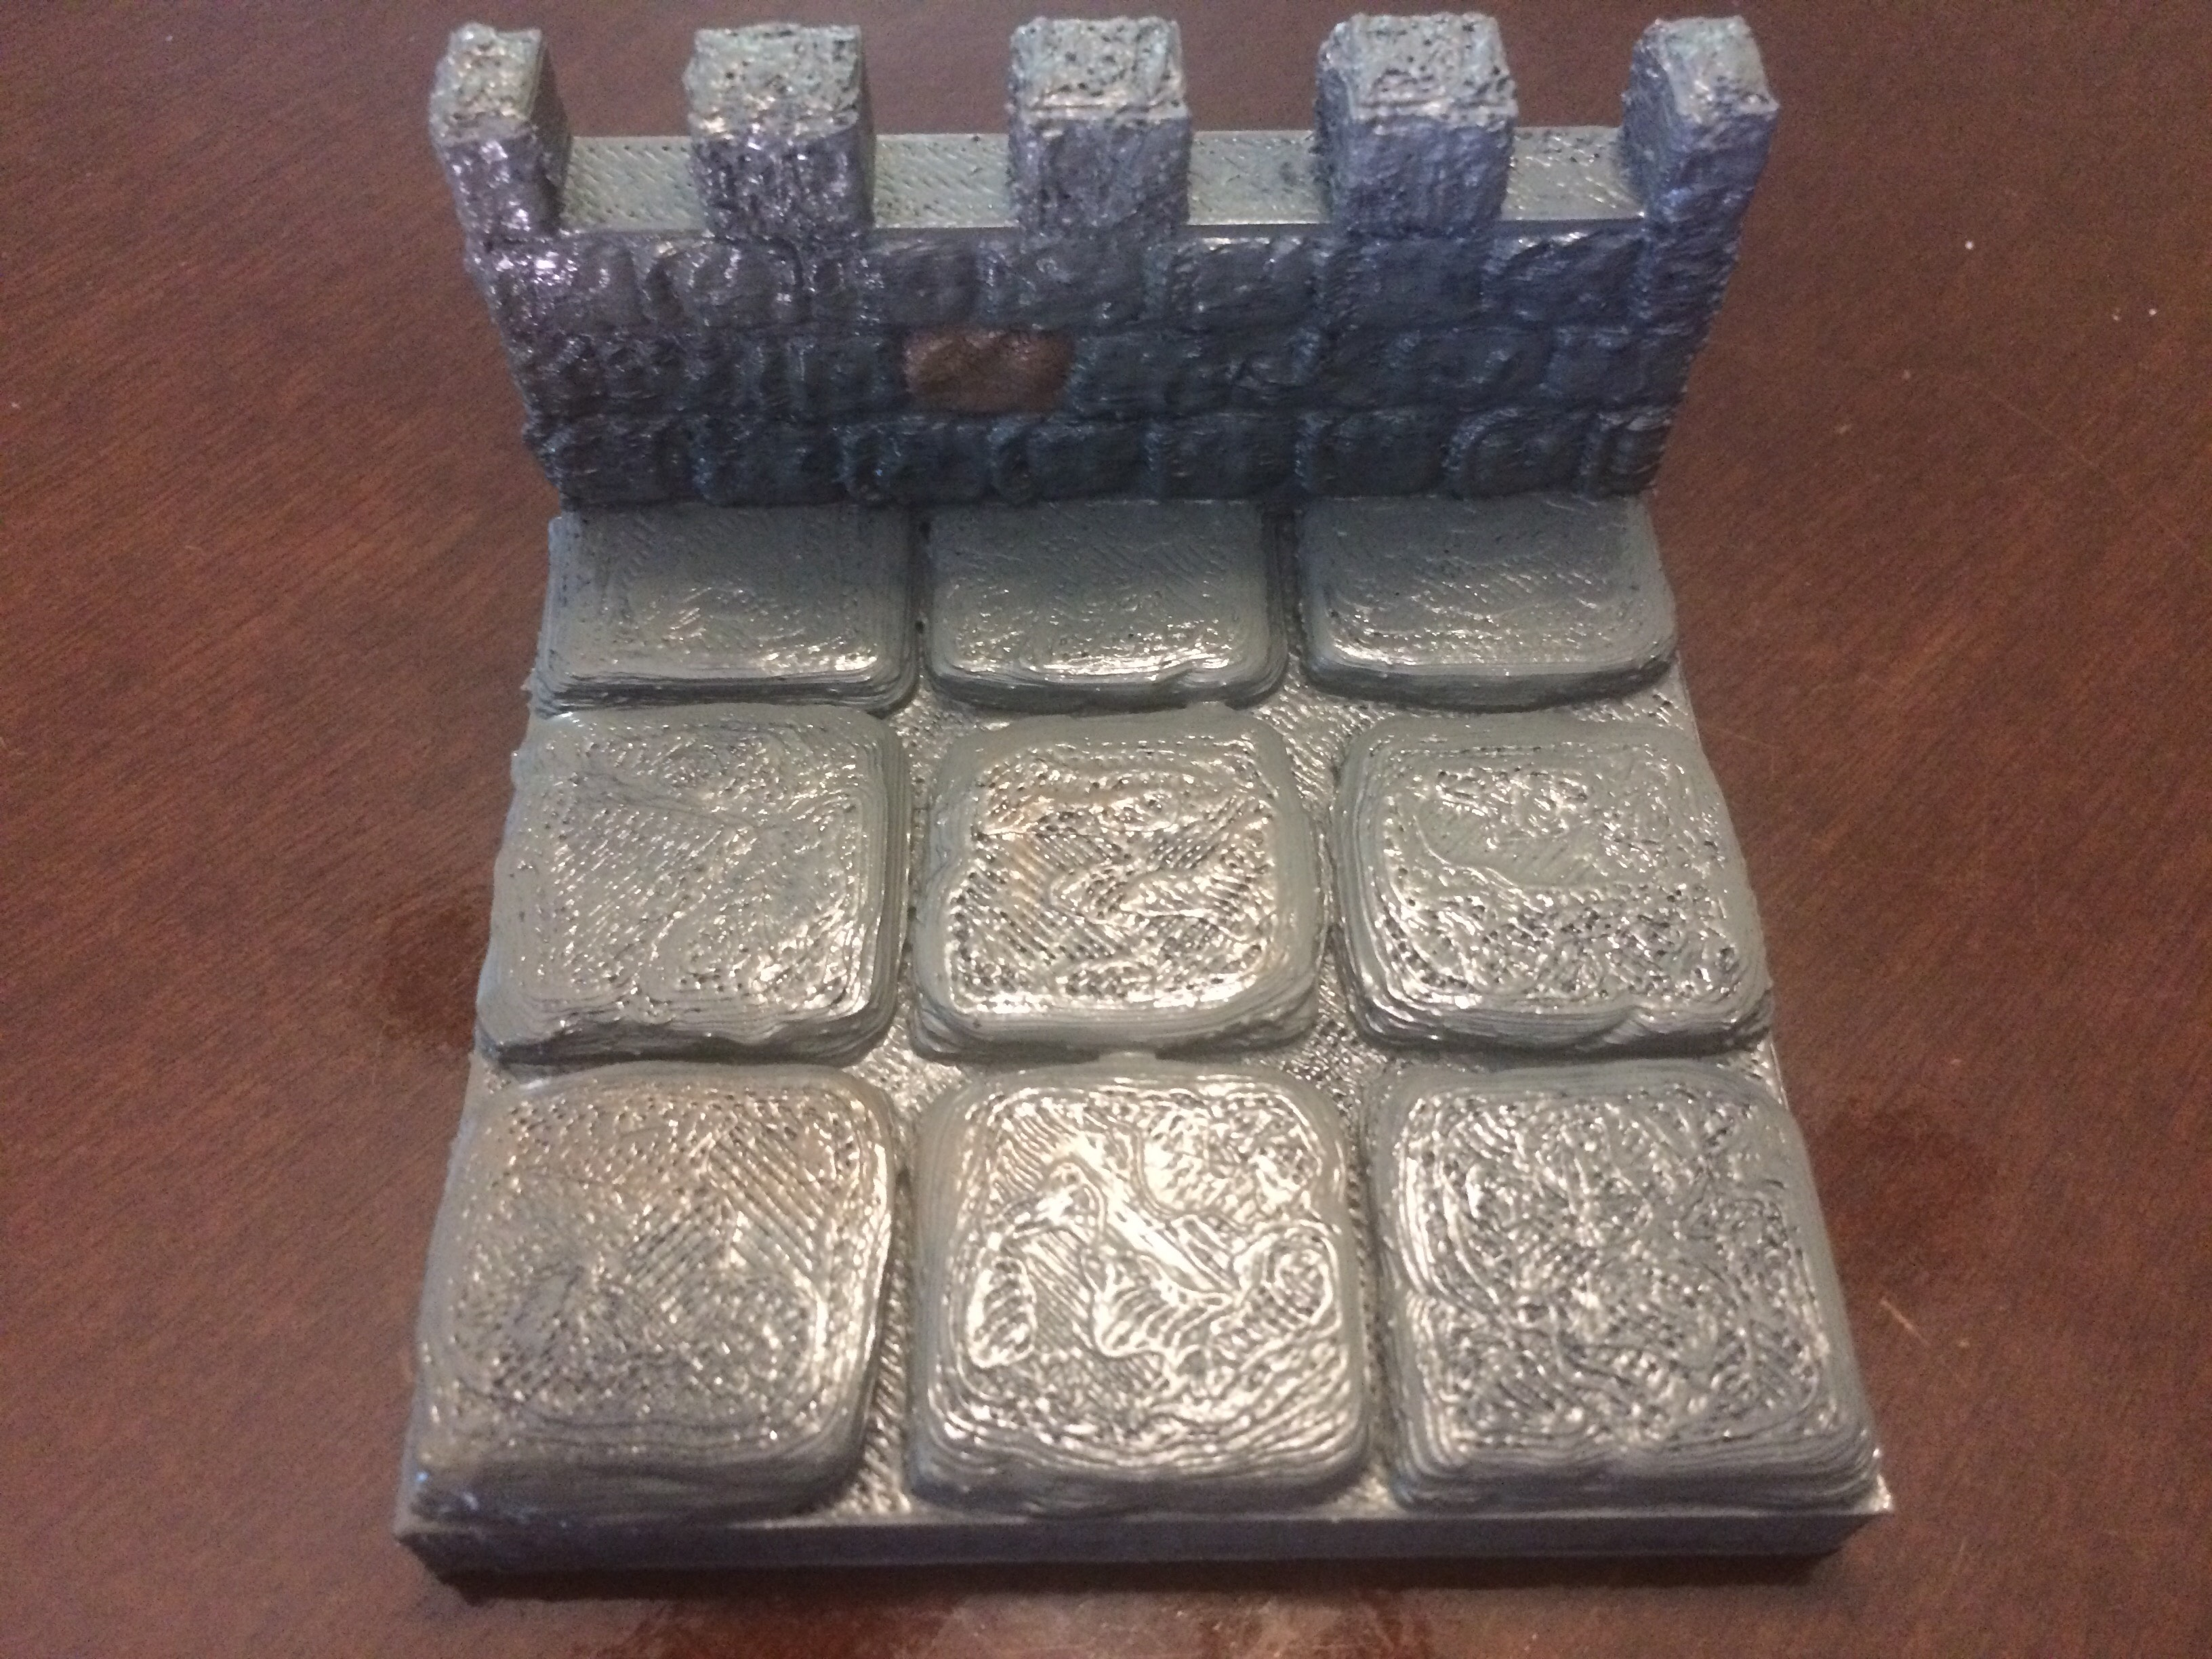 graphic about 3d Printable Dungeon Tiles referred to as Dungeon Tile 3X3 with Wall